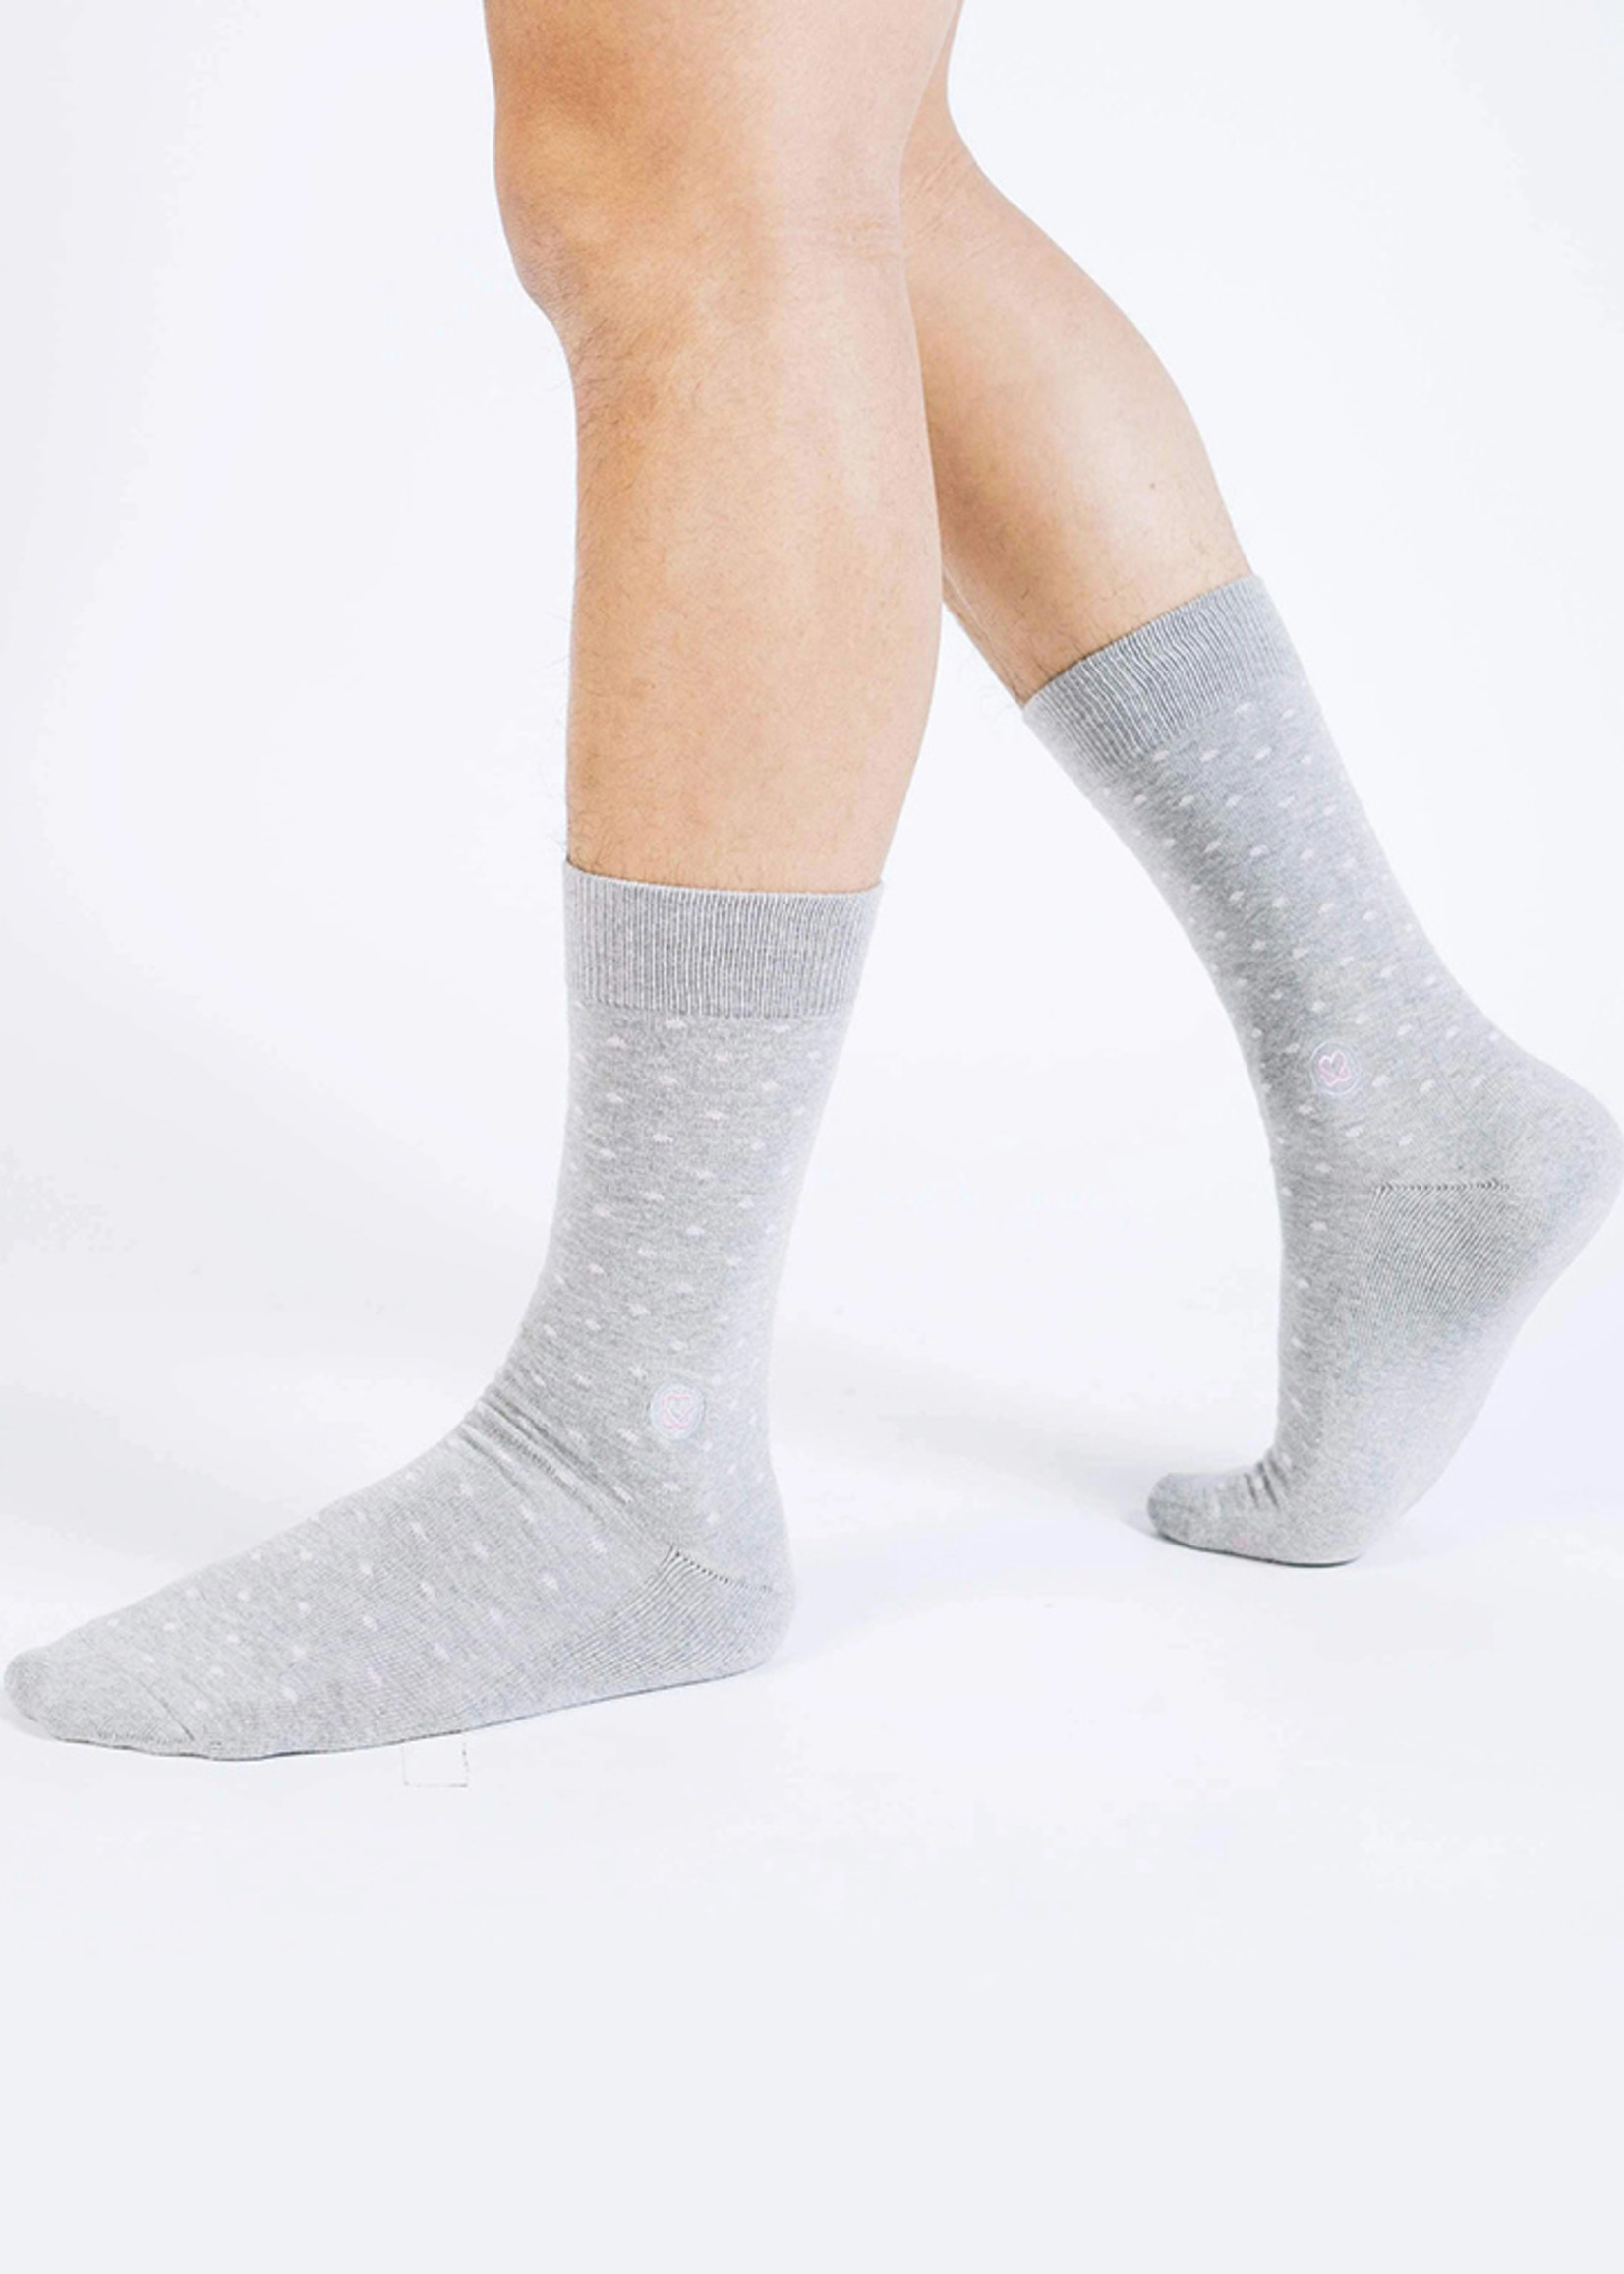 Conscious Step Men's Socks That Promote Breast Cancer Prevention